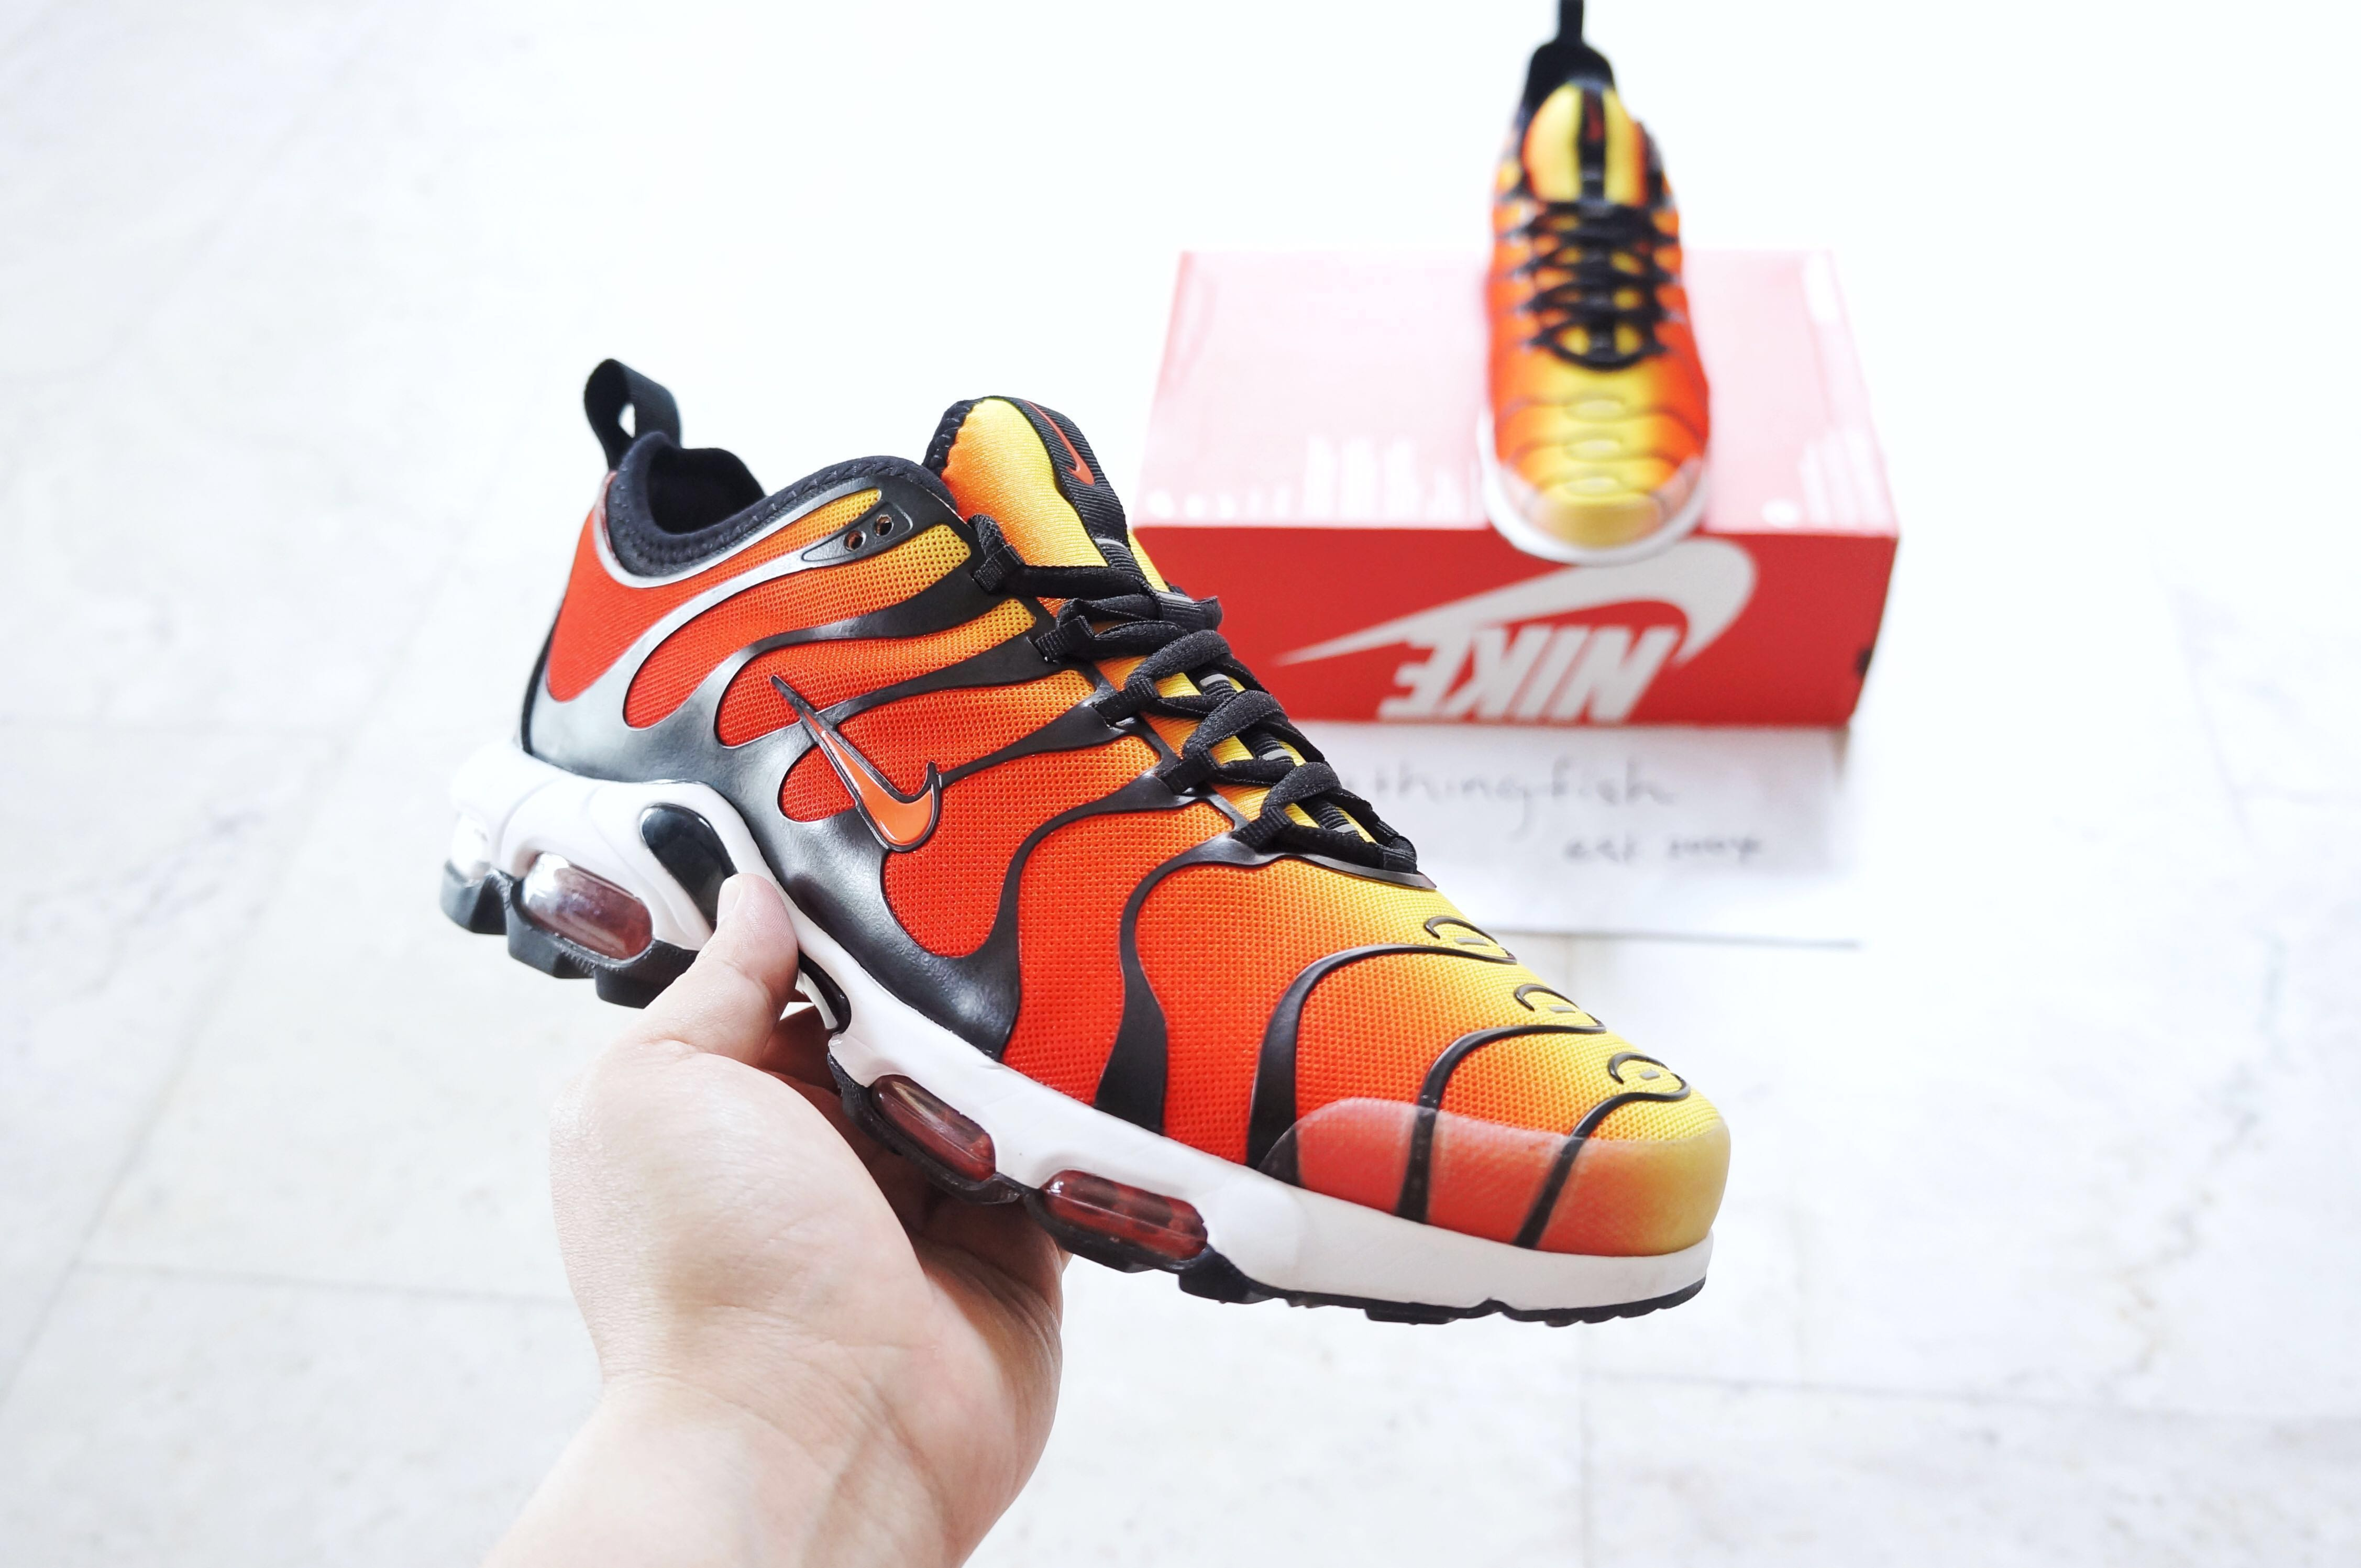 lowest price aff17 5c473 (BNIB) Nike Air Max Plus TN Ultra Tiger Men s US9   UK8, Men s Fashion,  Footwear, Sneakers on Carousell